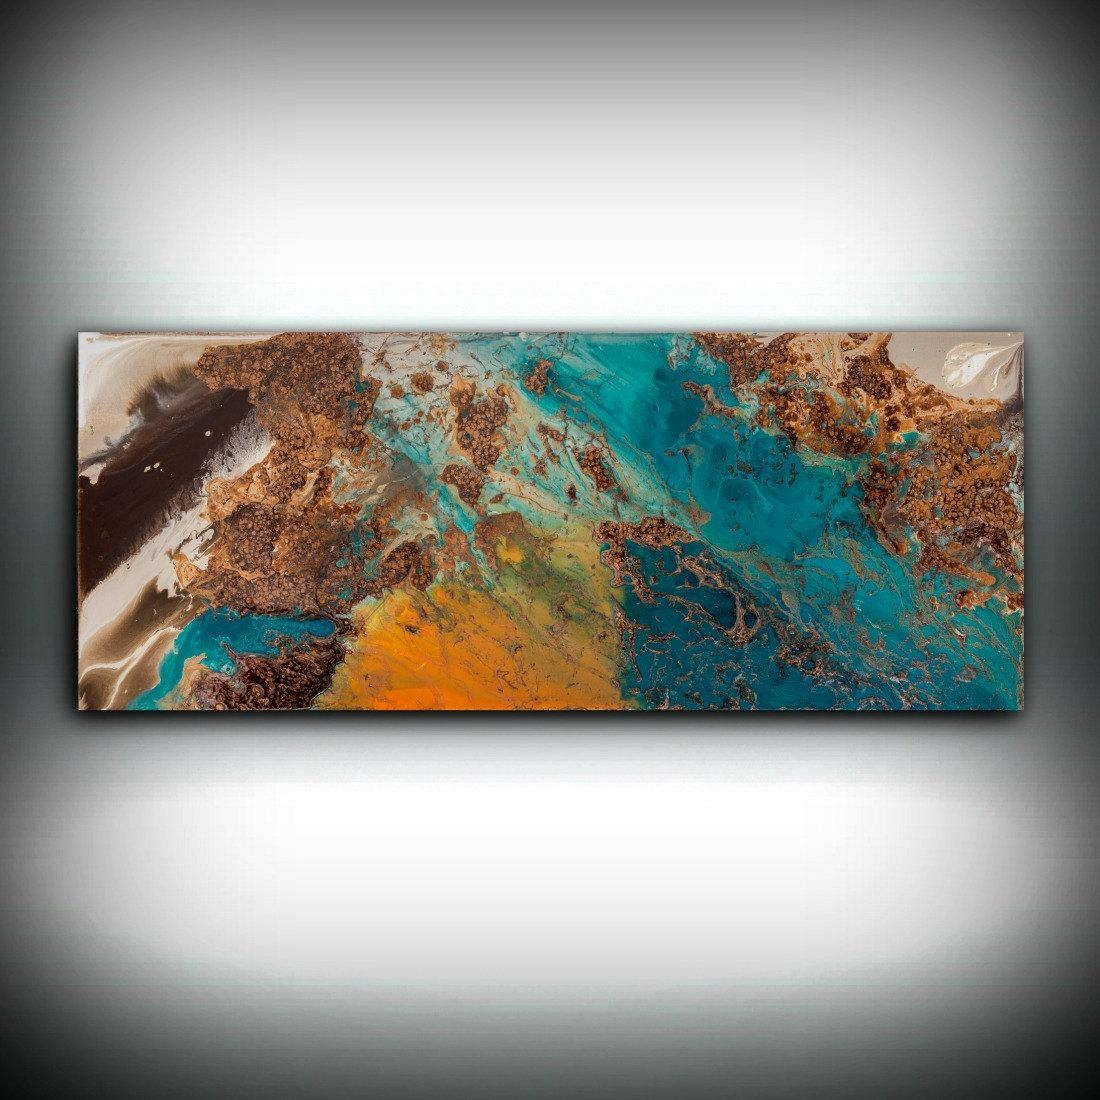 Sale Blue And Copper Art, Wall Art Prints Fine Art Prints Abstract With Regard To Blue And Brown Wall Art (Image 15 of 20)